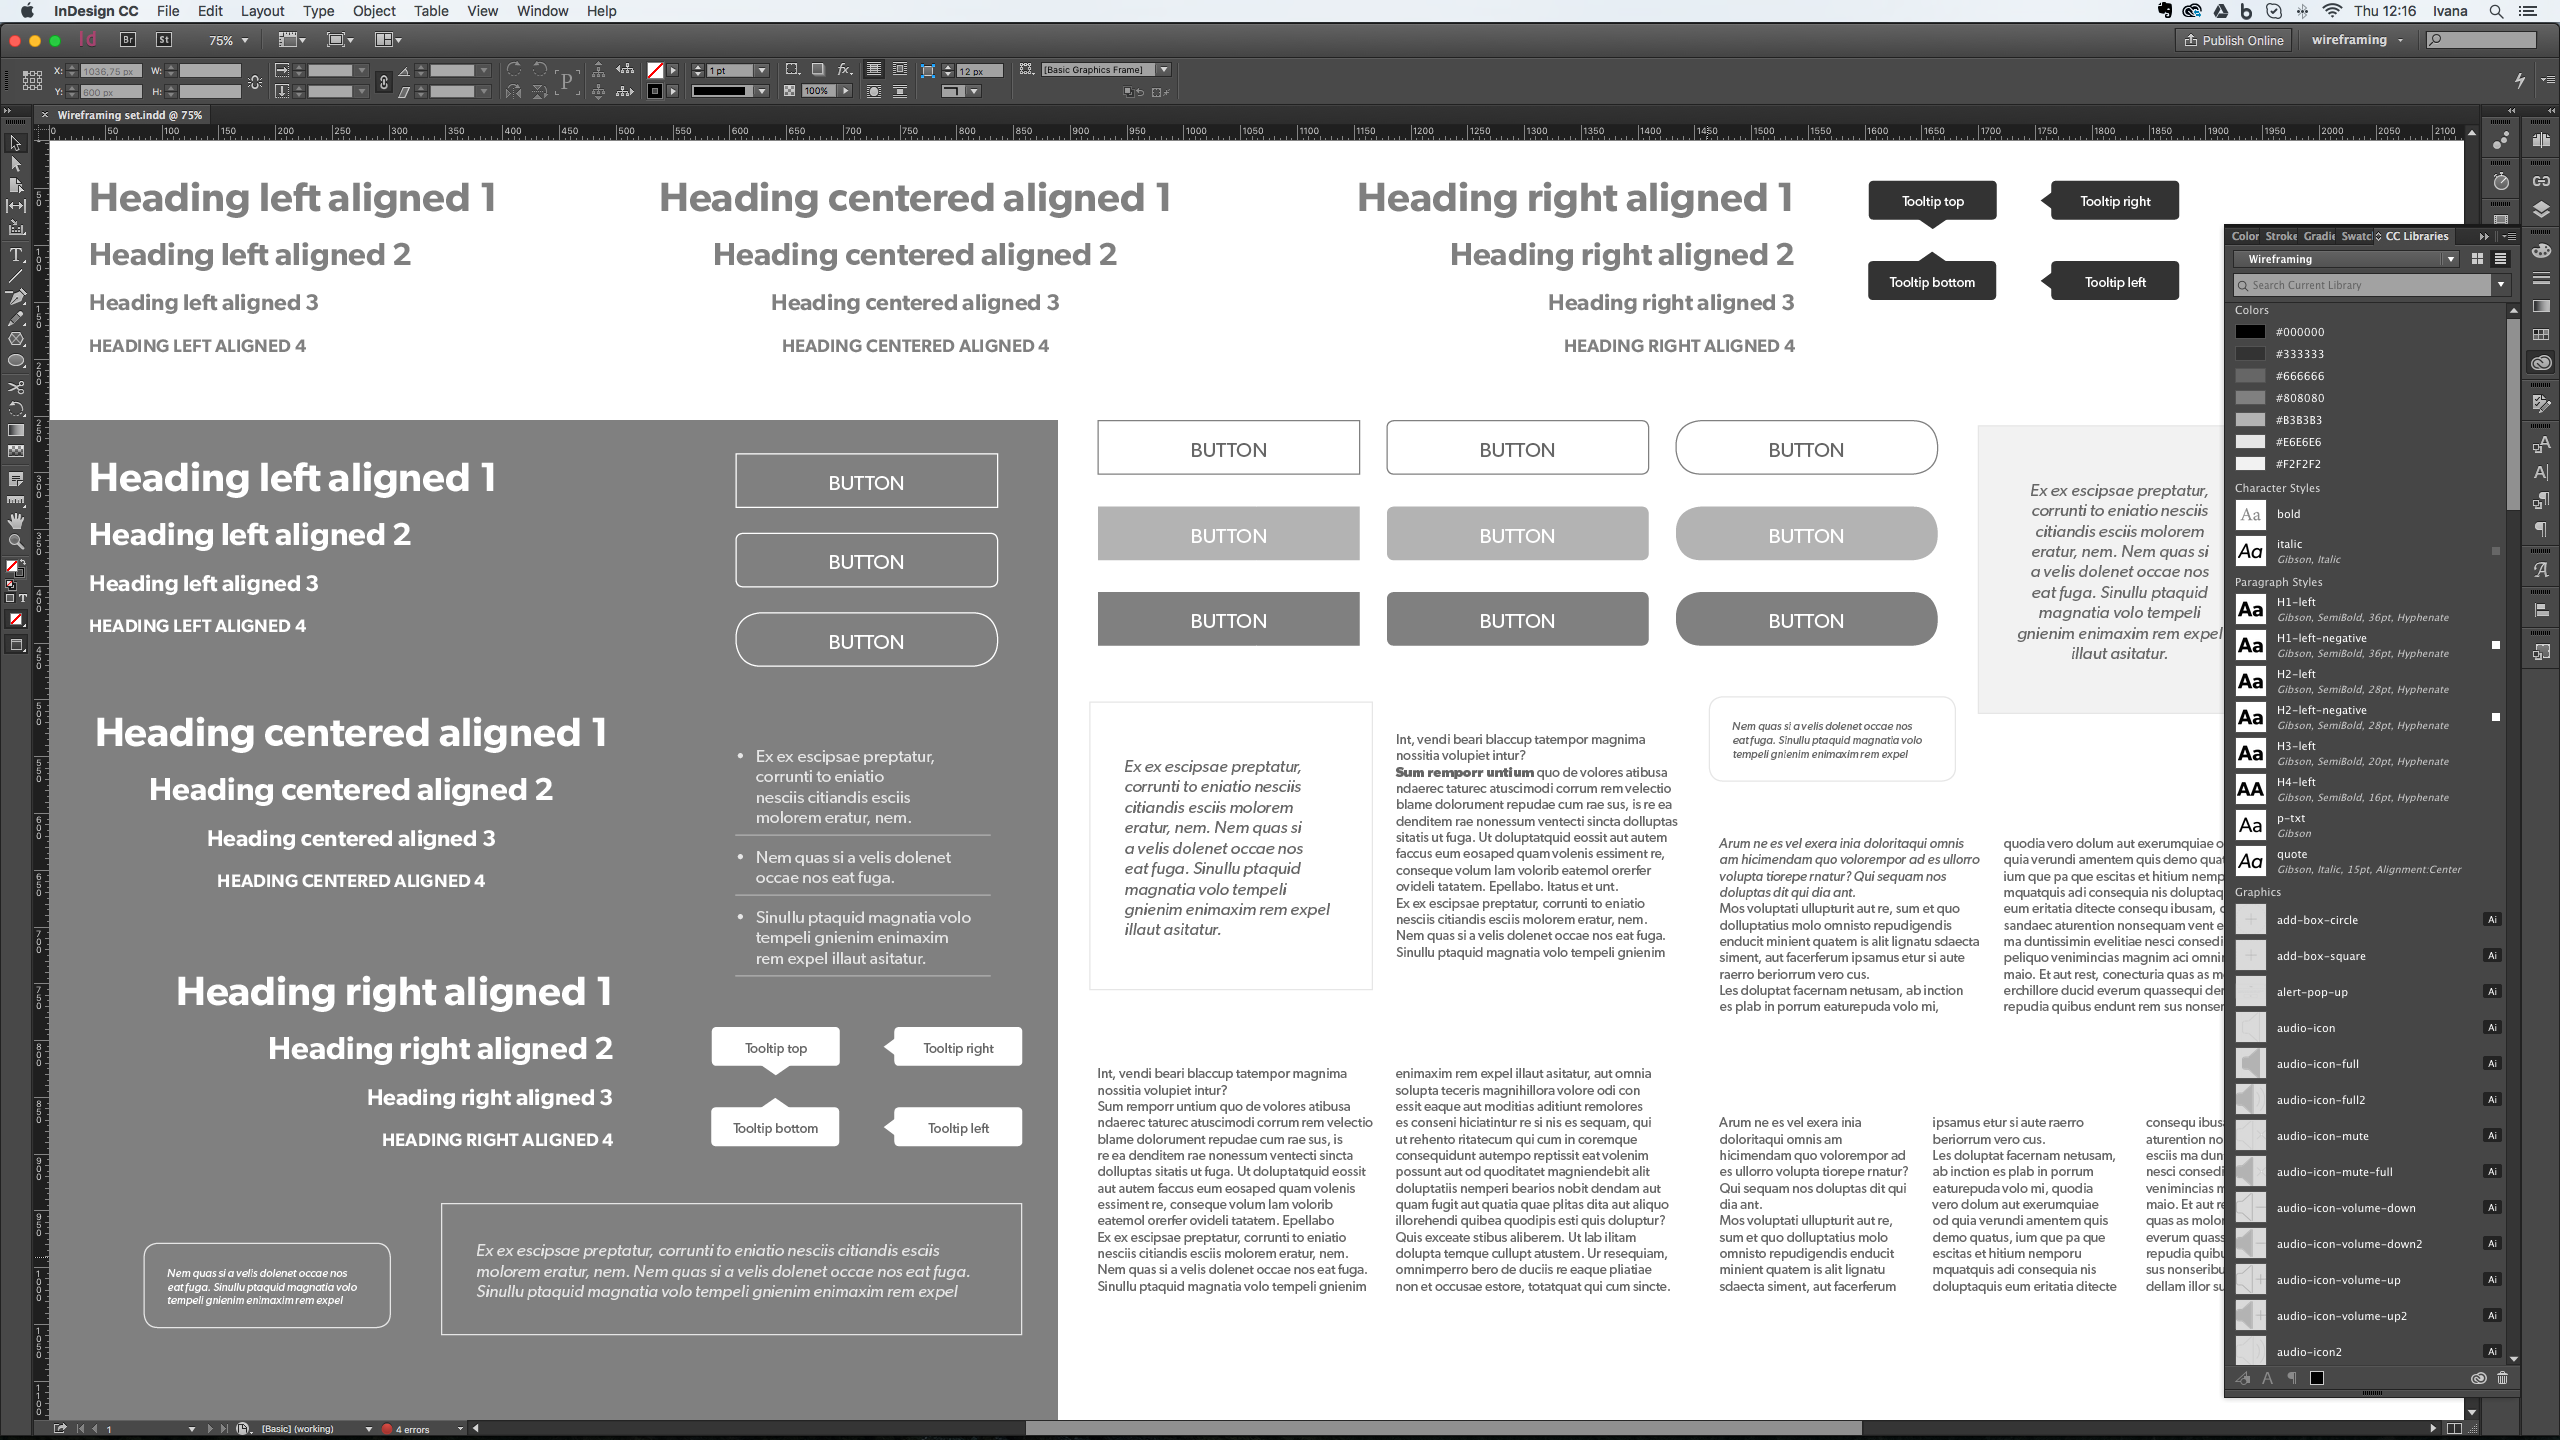 Who Knew Adobe CC Could Wireframe? - Image 4